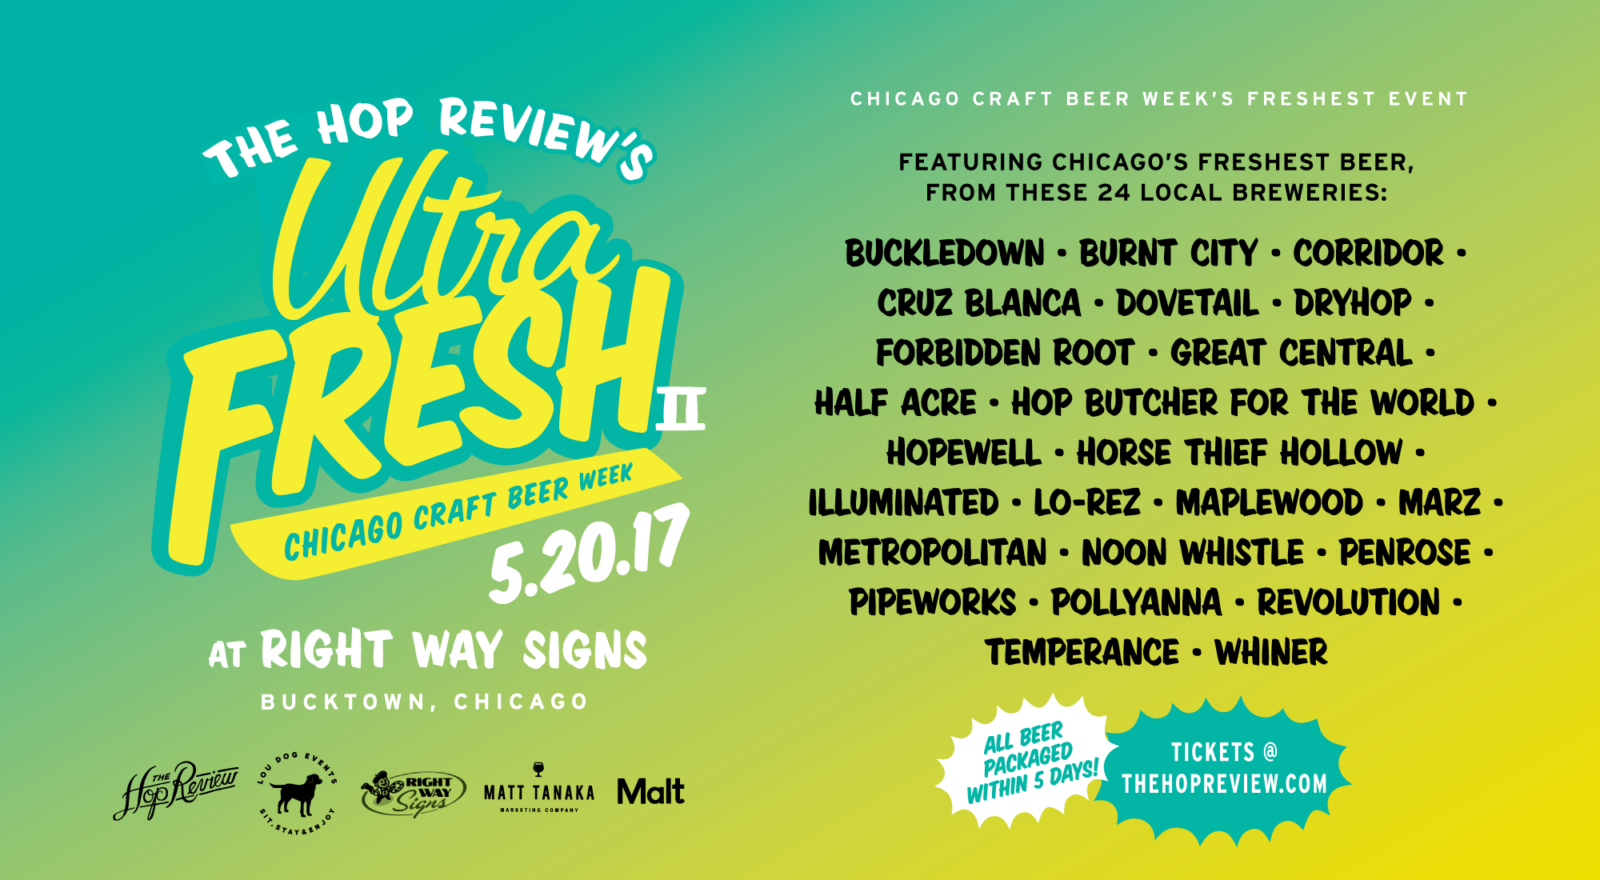 The Hop Review is sponsoring Ultra Fresh II beer tasting event May 20, with Horse Thief Hollow and 20 other local craft breweries serving their freshest beer